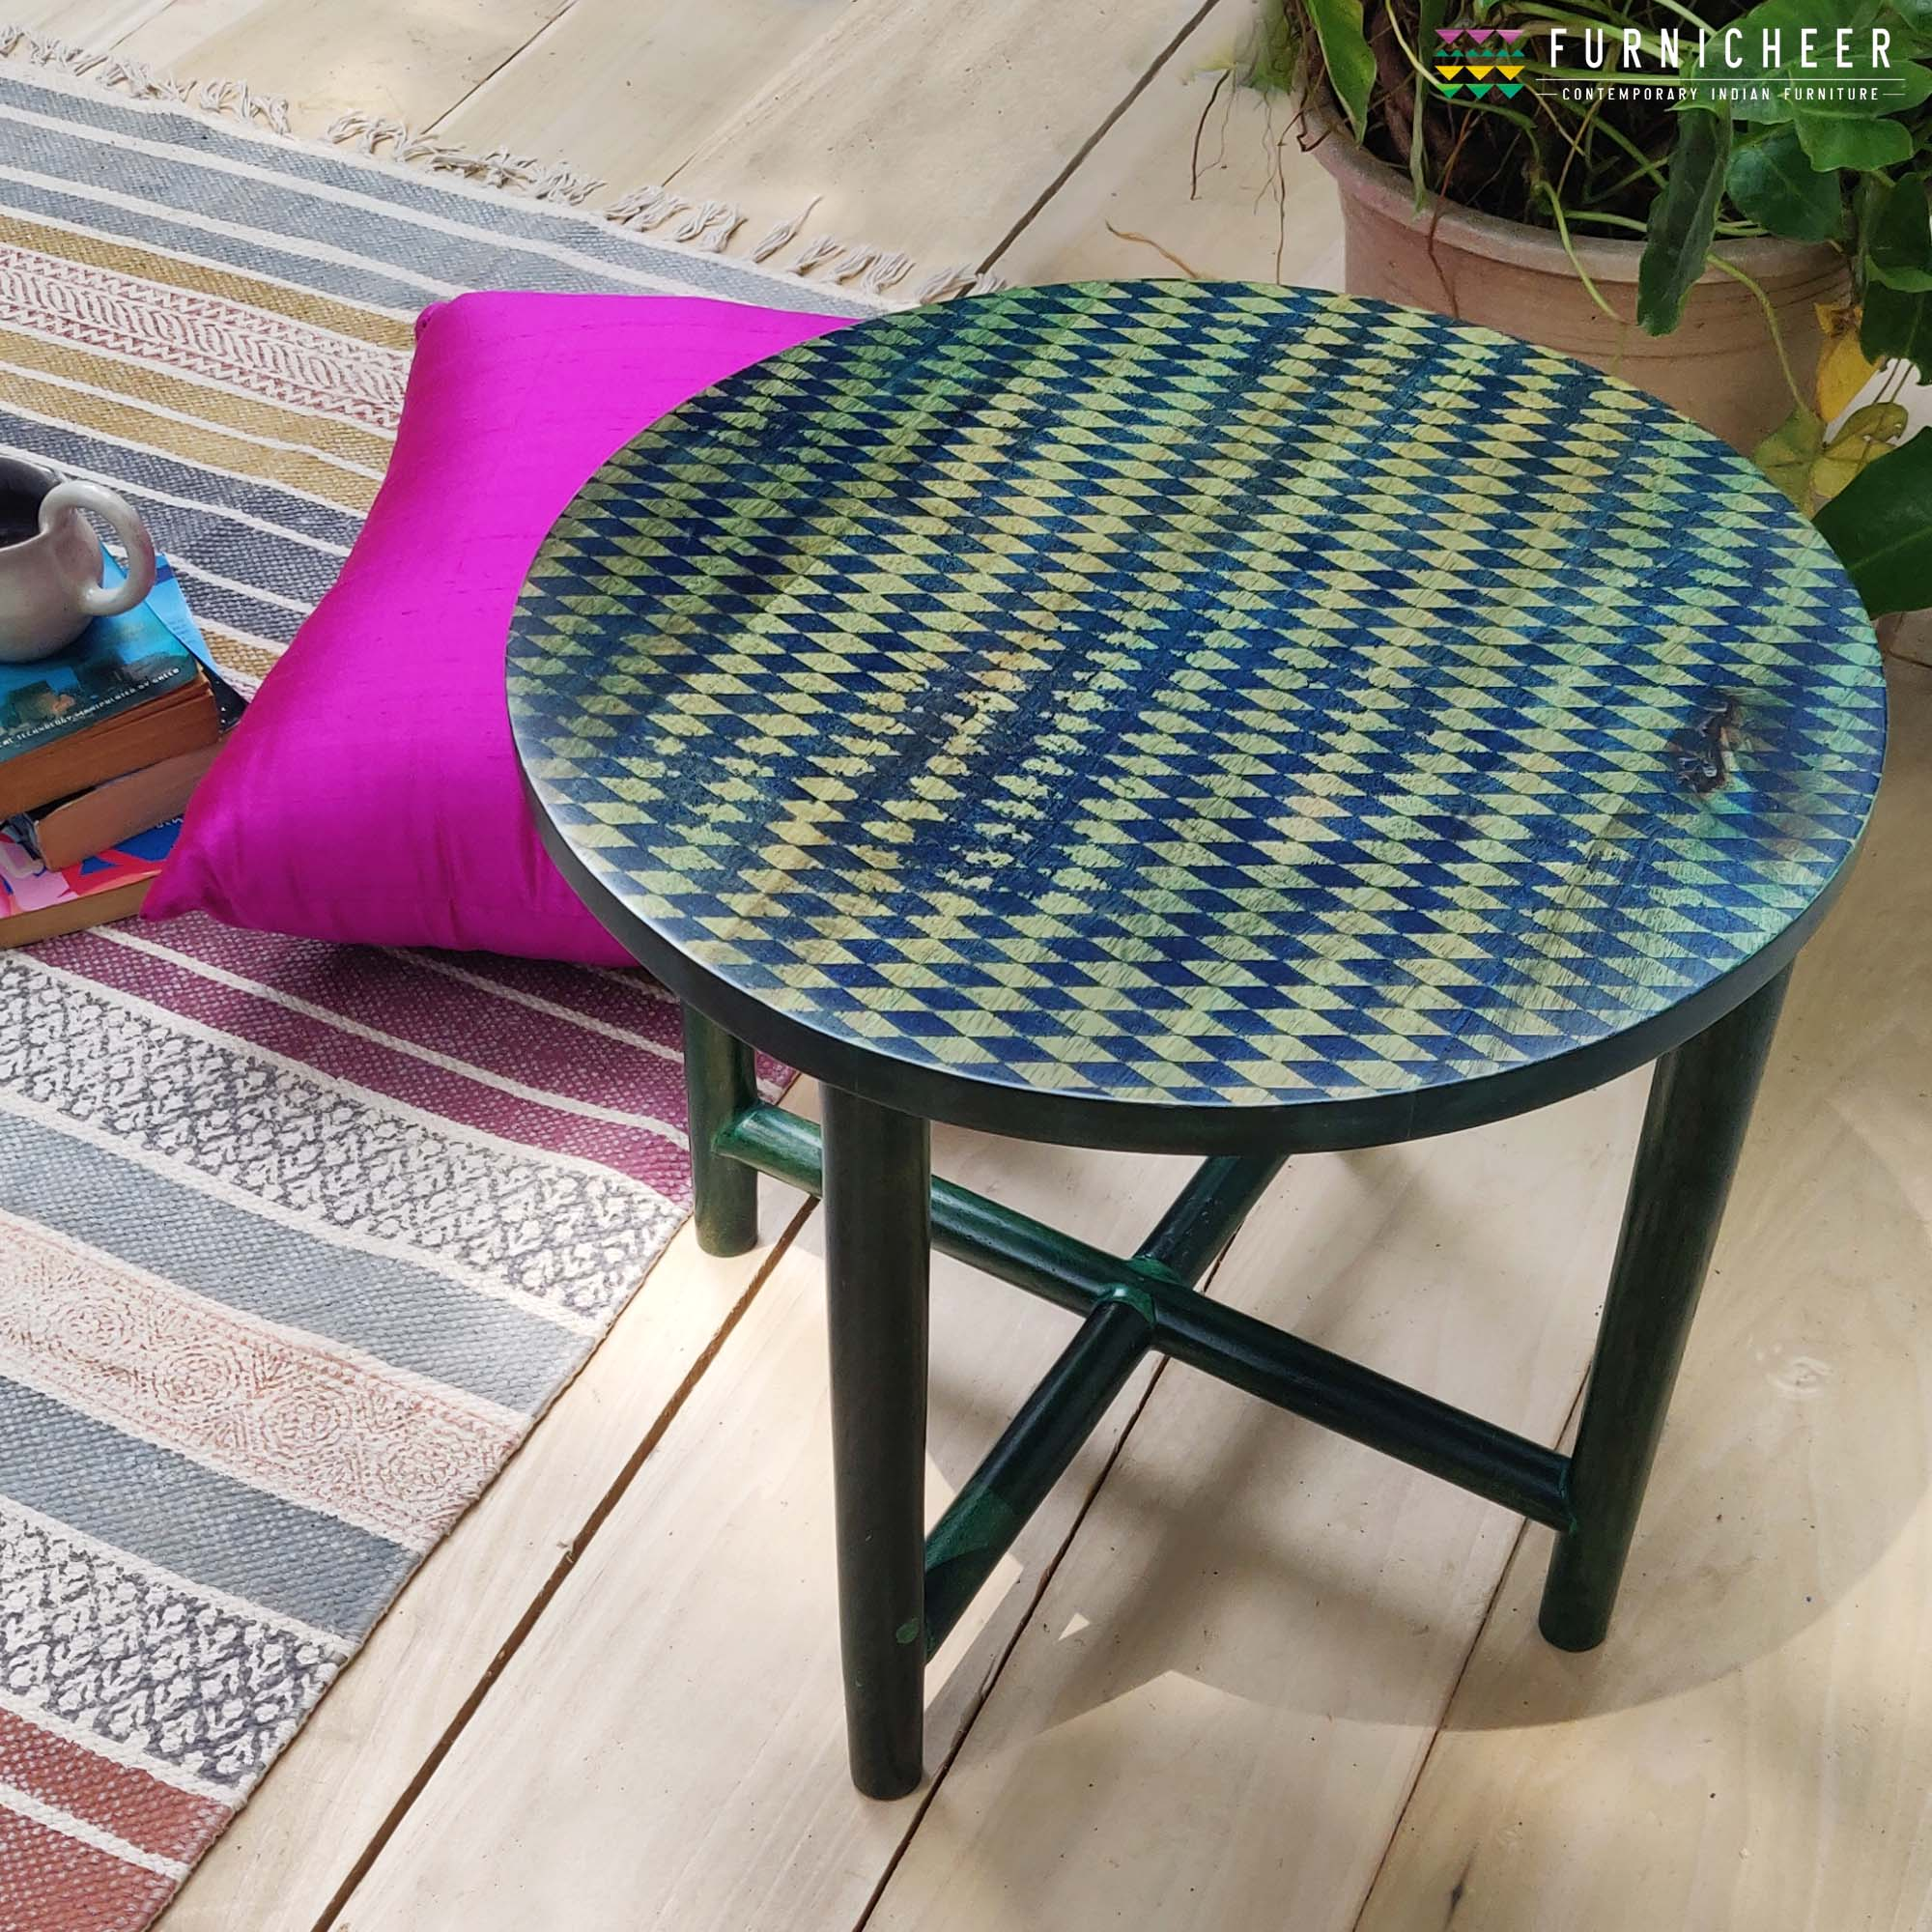 1.SIDE & END TABLE SKU GCST1614